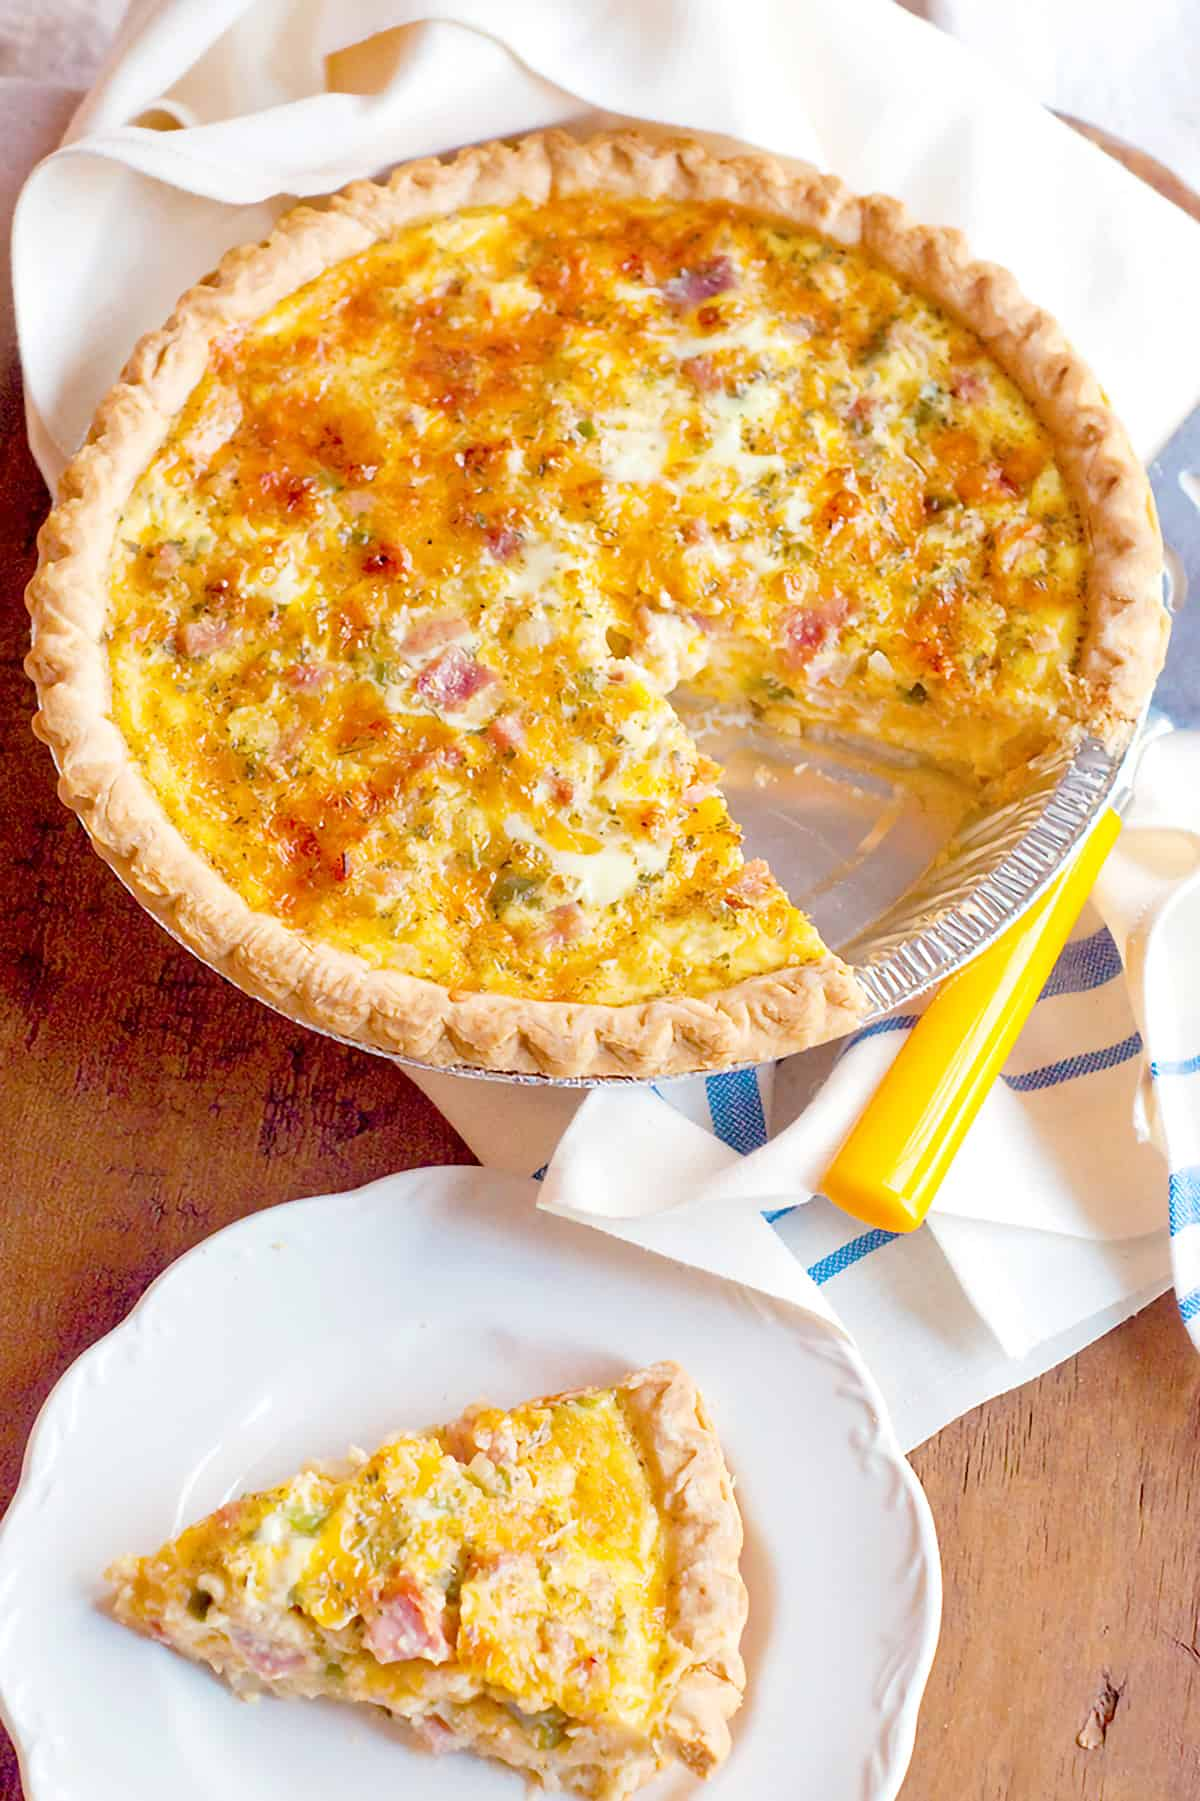 Ham and cheese quiche on a kitchen towel.